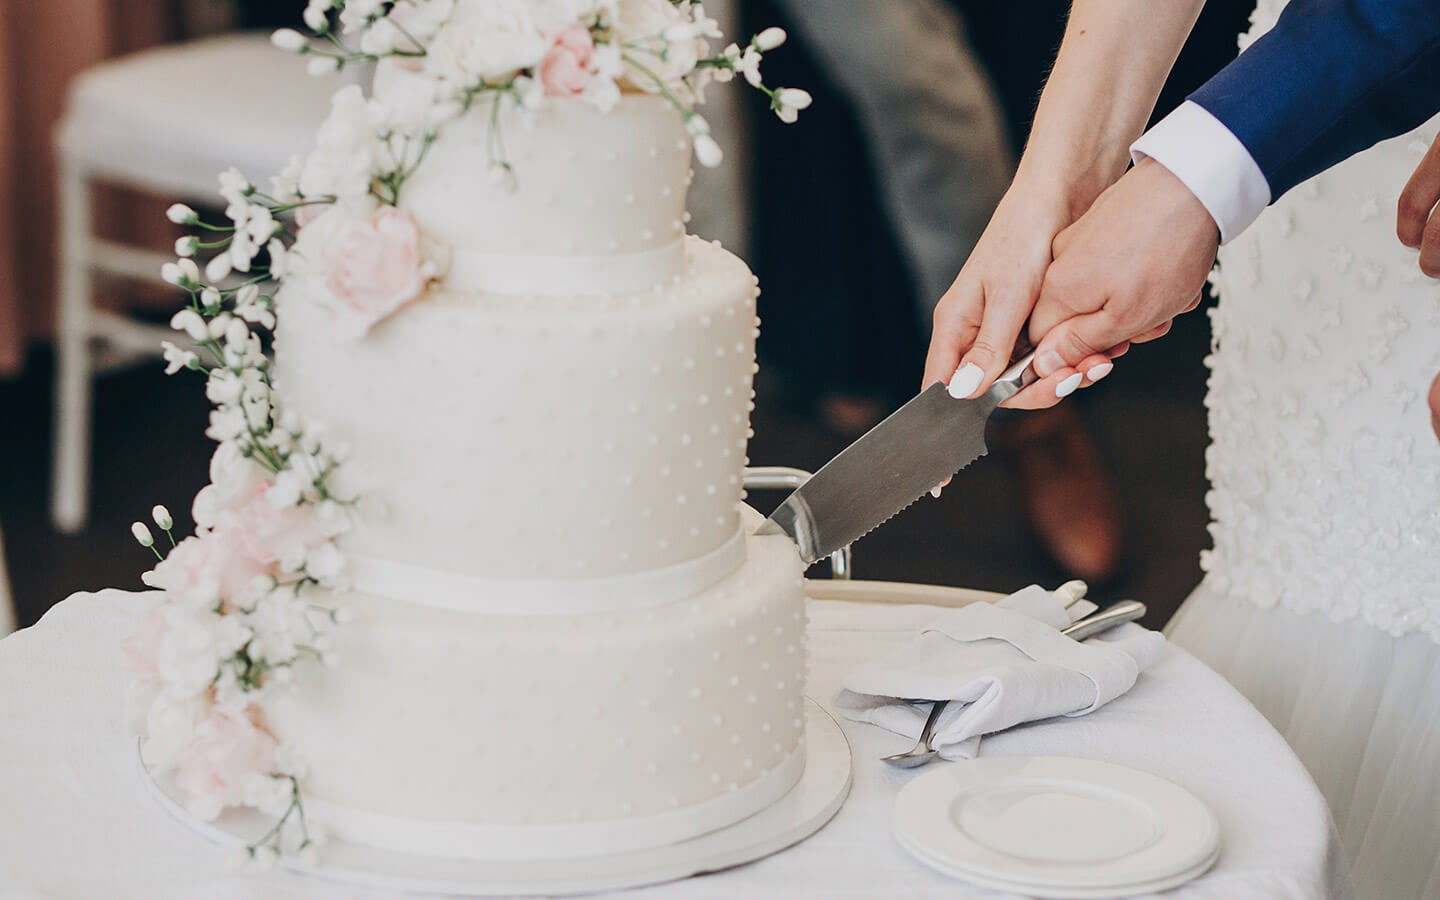 Cake cutting at a wedding in Cape Cod